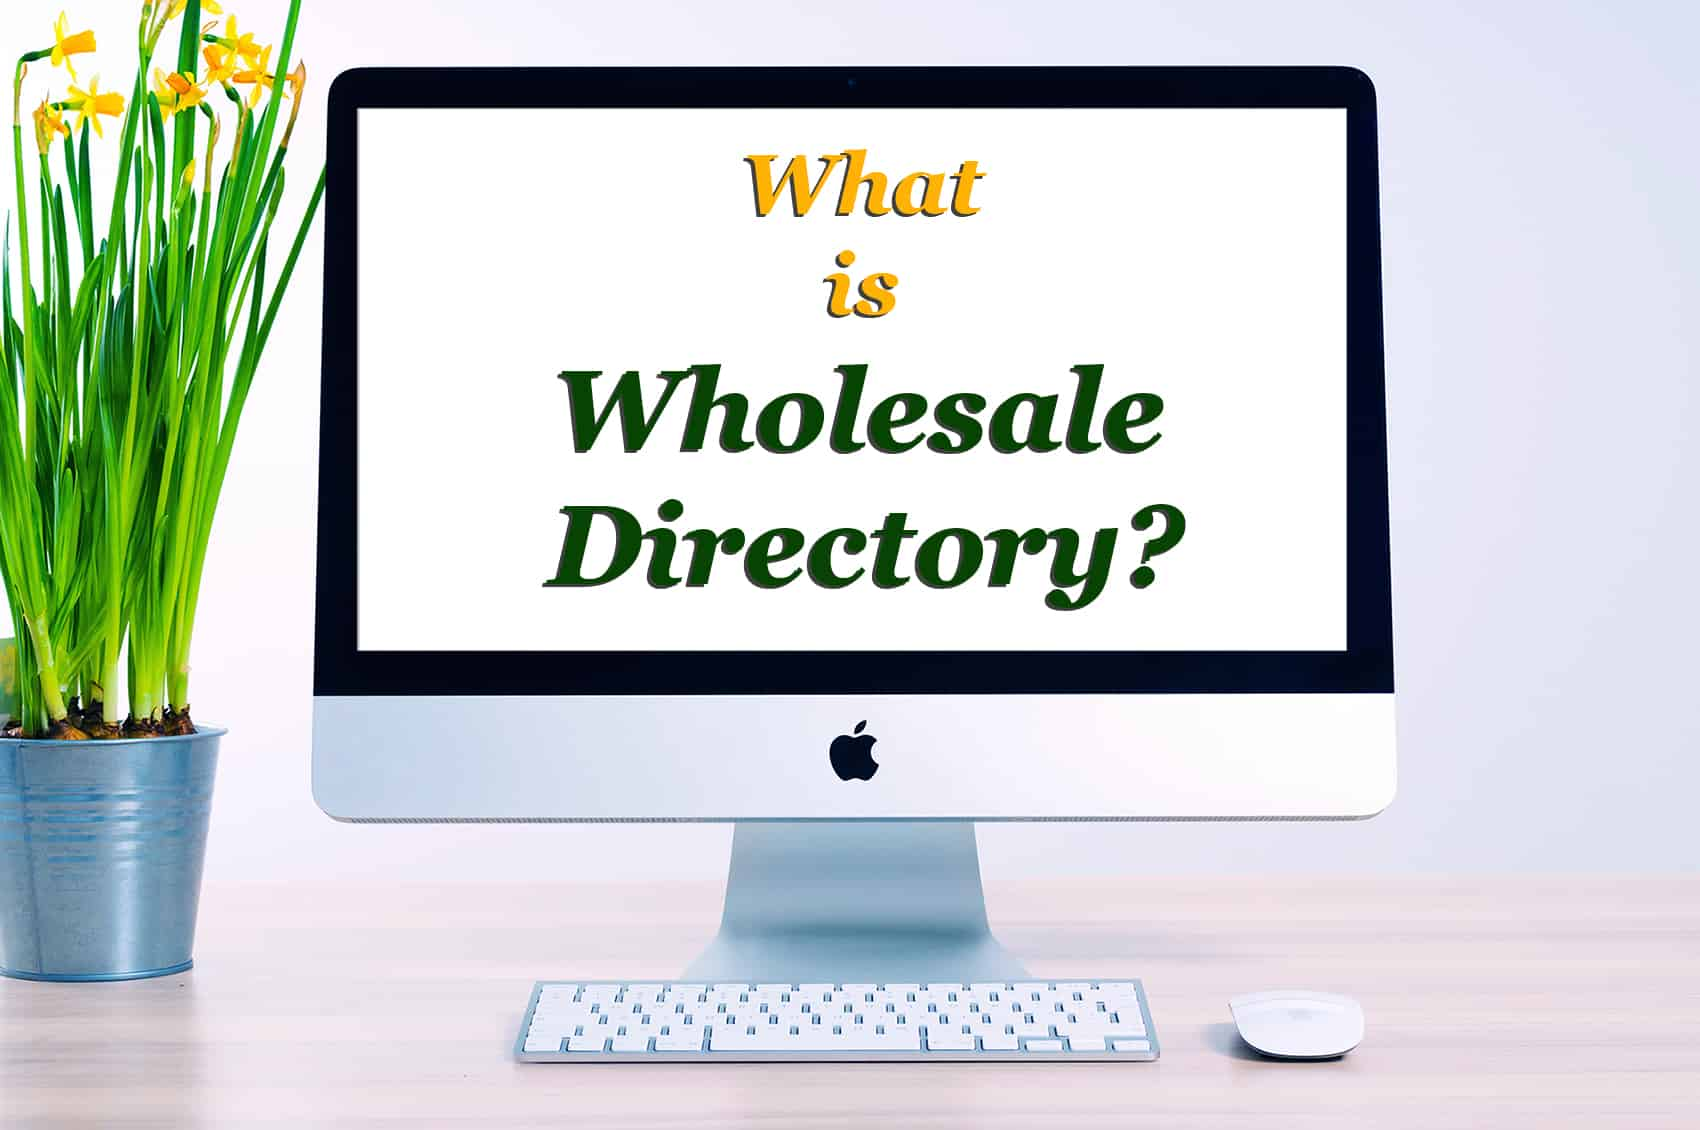 What is Wholesale Directory